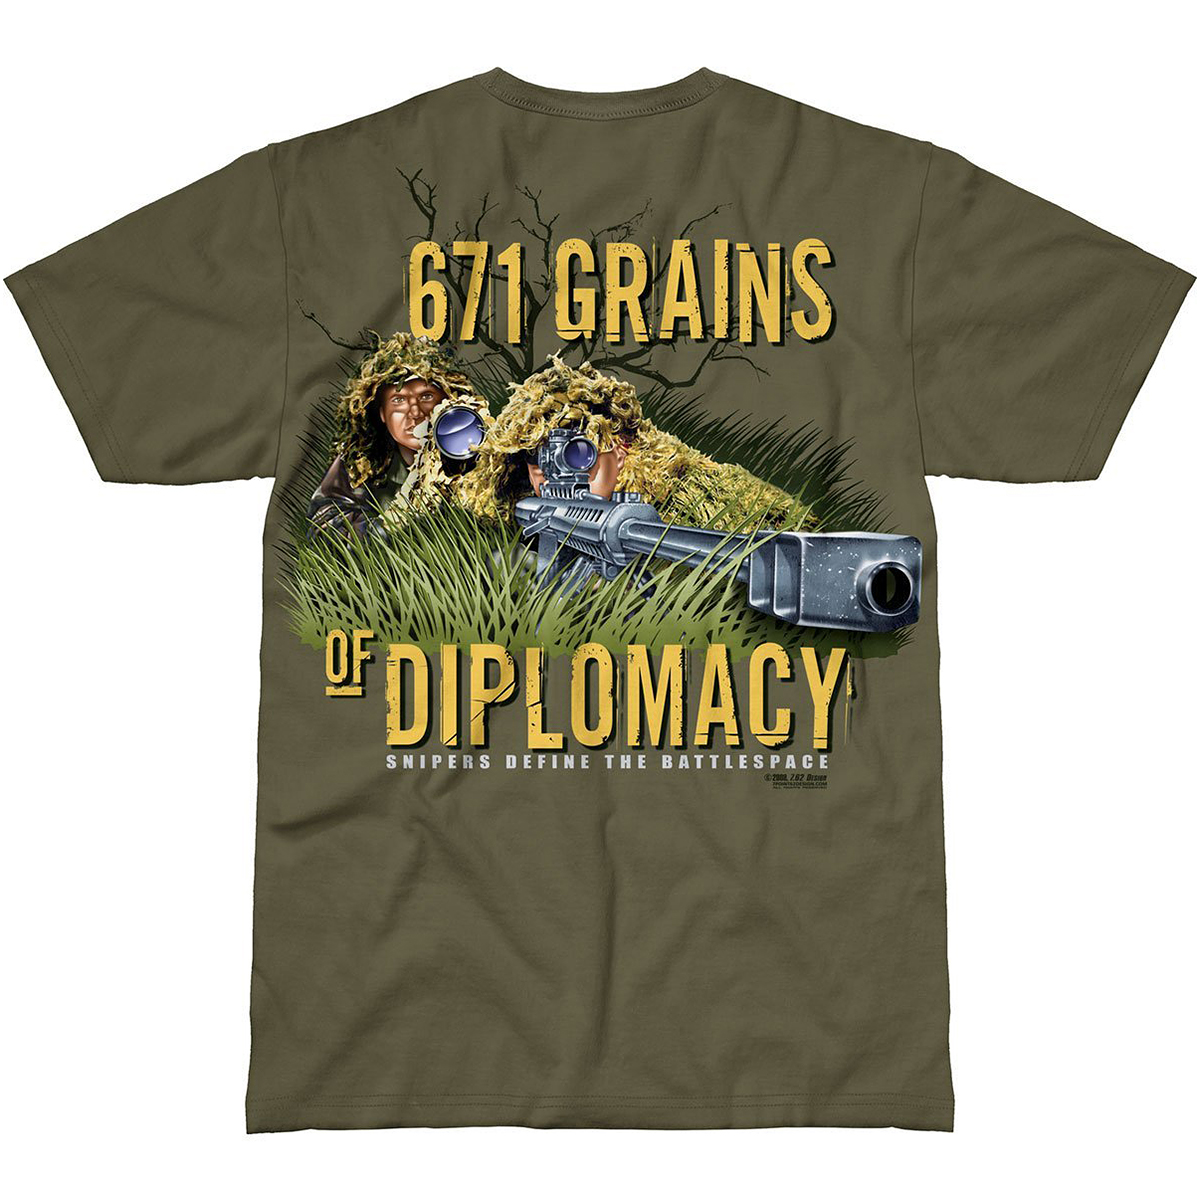 Design sniper team t shirt military green for Army design shirts online